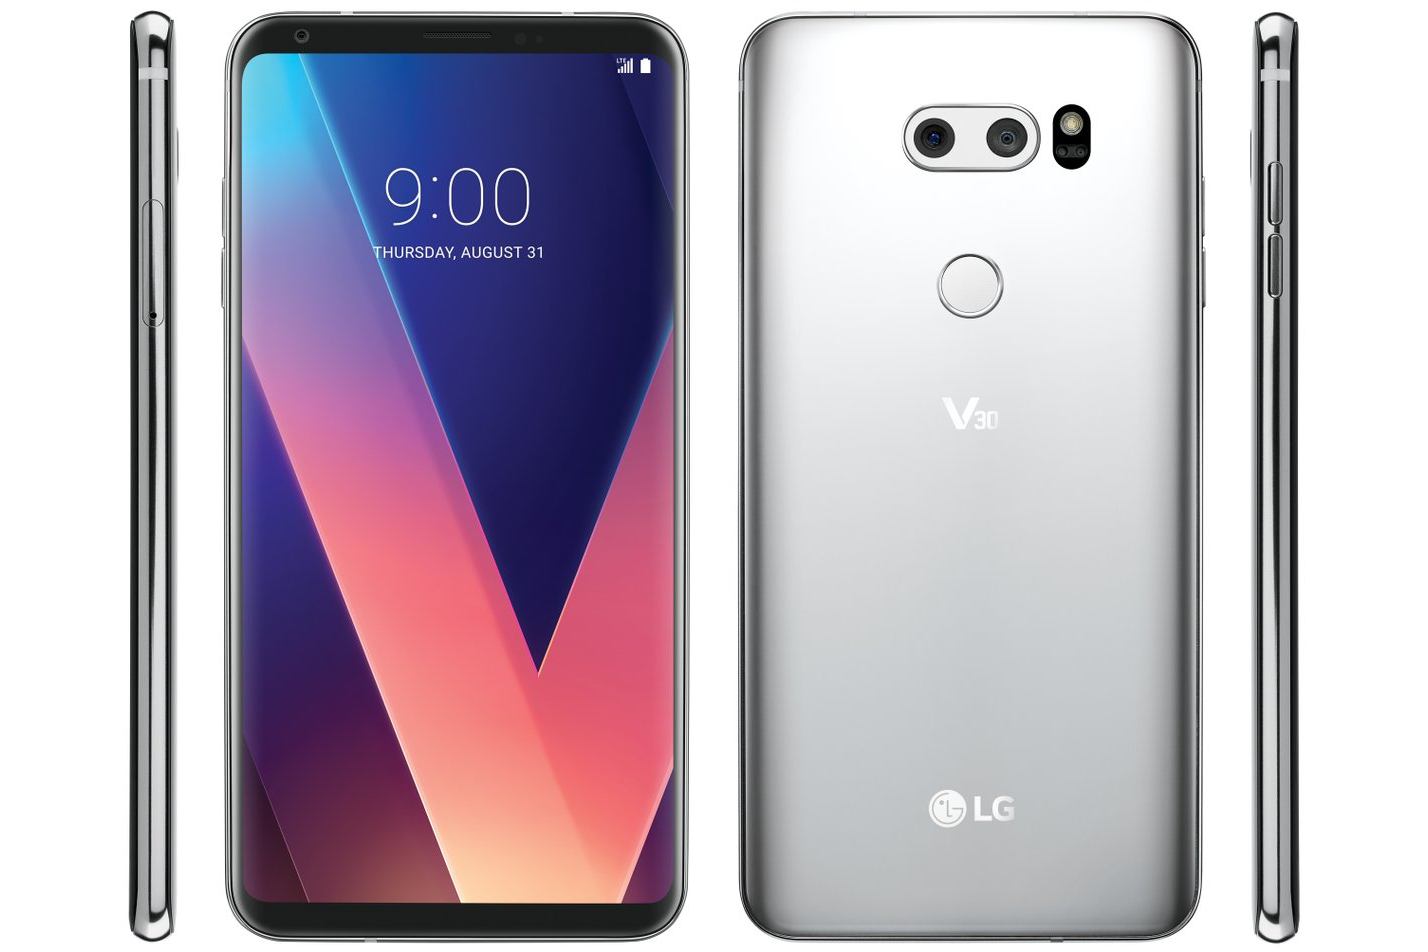 The Lg V Has Me More Excited Than The New Iphone Where The V Leads Pixel Xls Might Follow